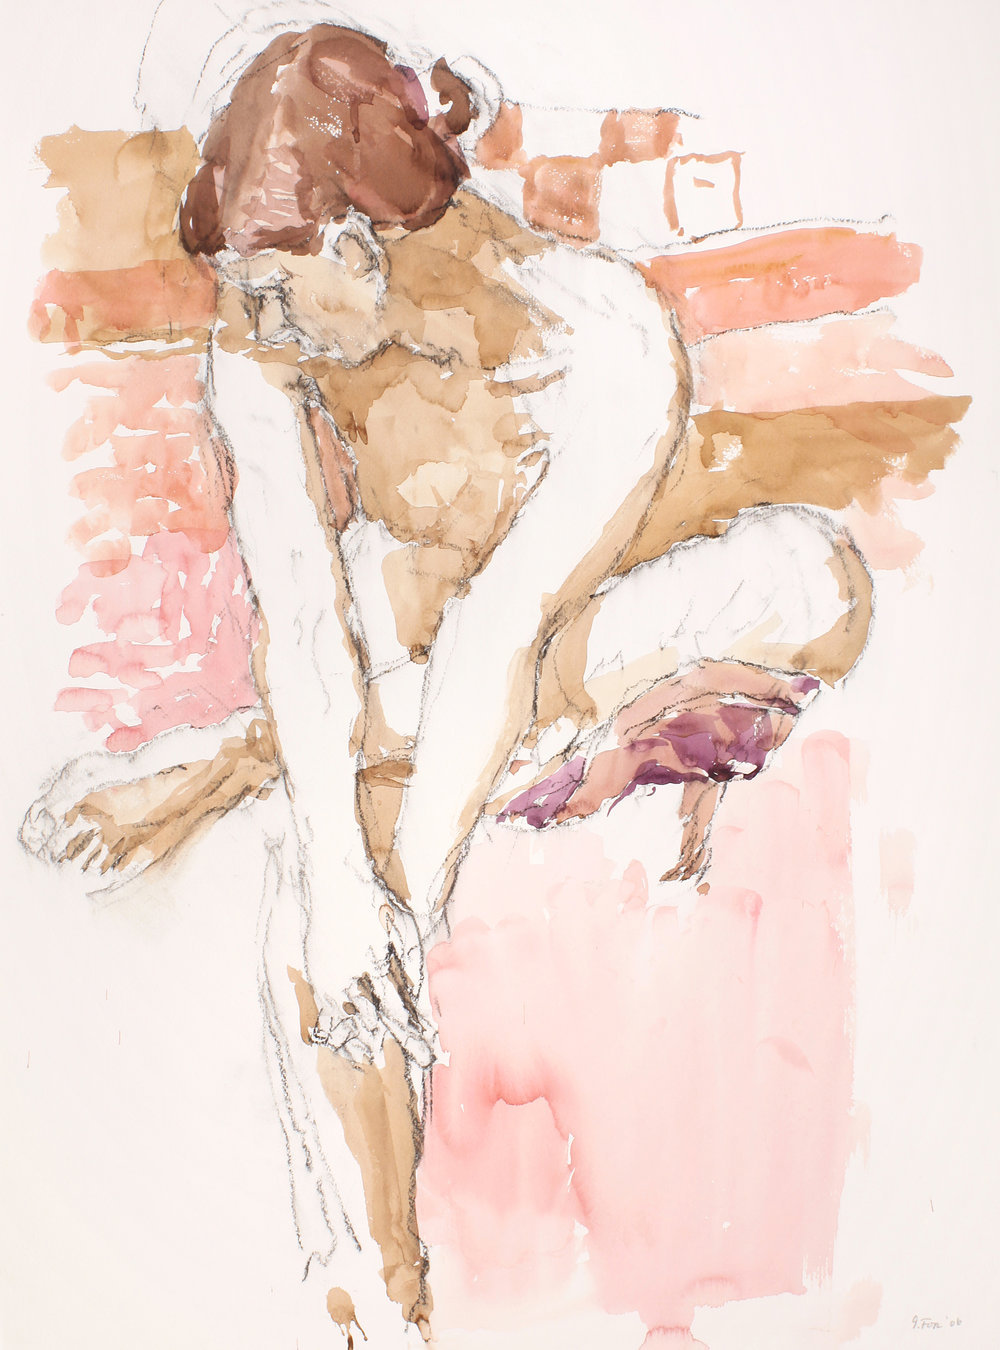 2006_Seated_Nude_with_Leg_Crossed_and_Head_to_Left_against_Pink_Cloth_watercolour_and_charcoal_on_paper_30x22in_WPF643.jpg